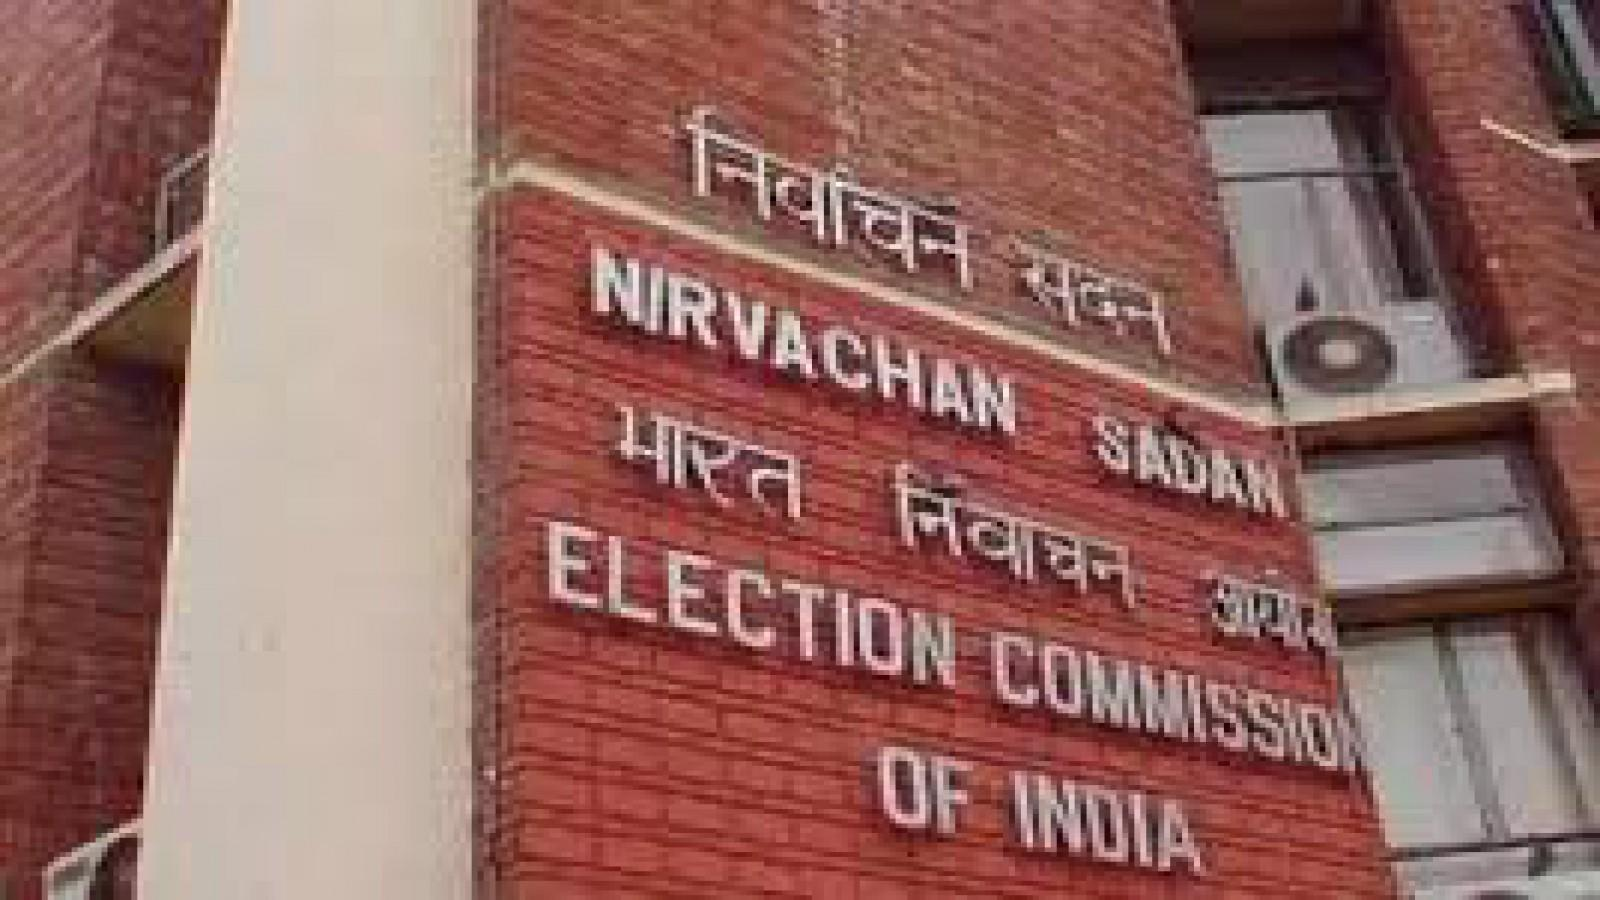 ec-announces-maharashtra-haryana-assembly-poll-date-as-october-21